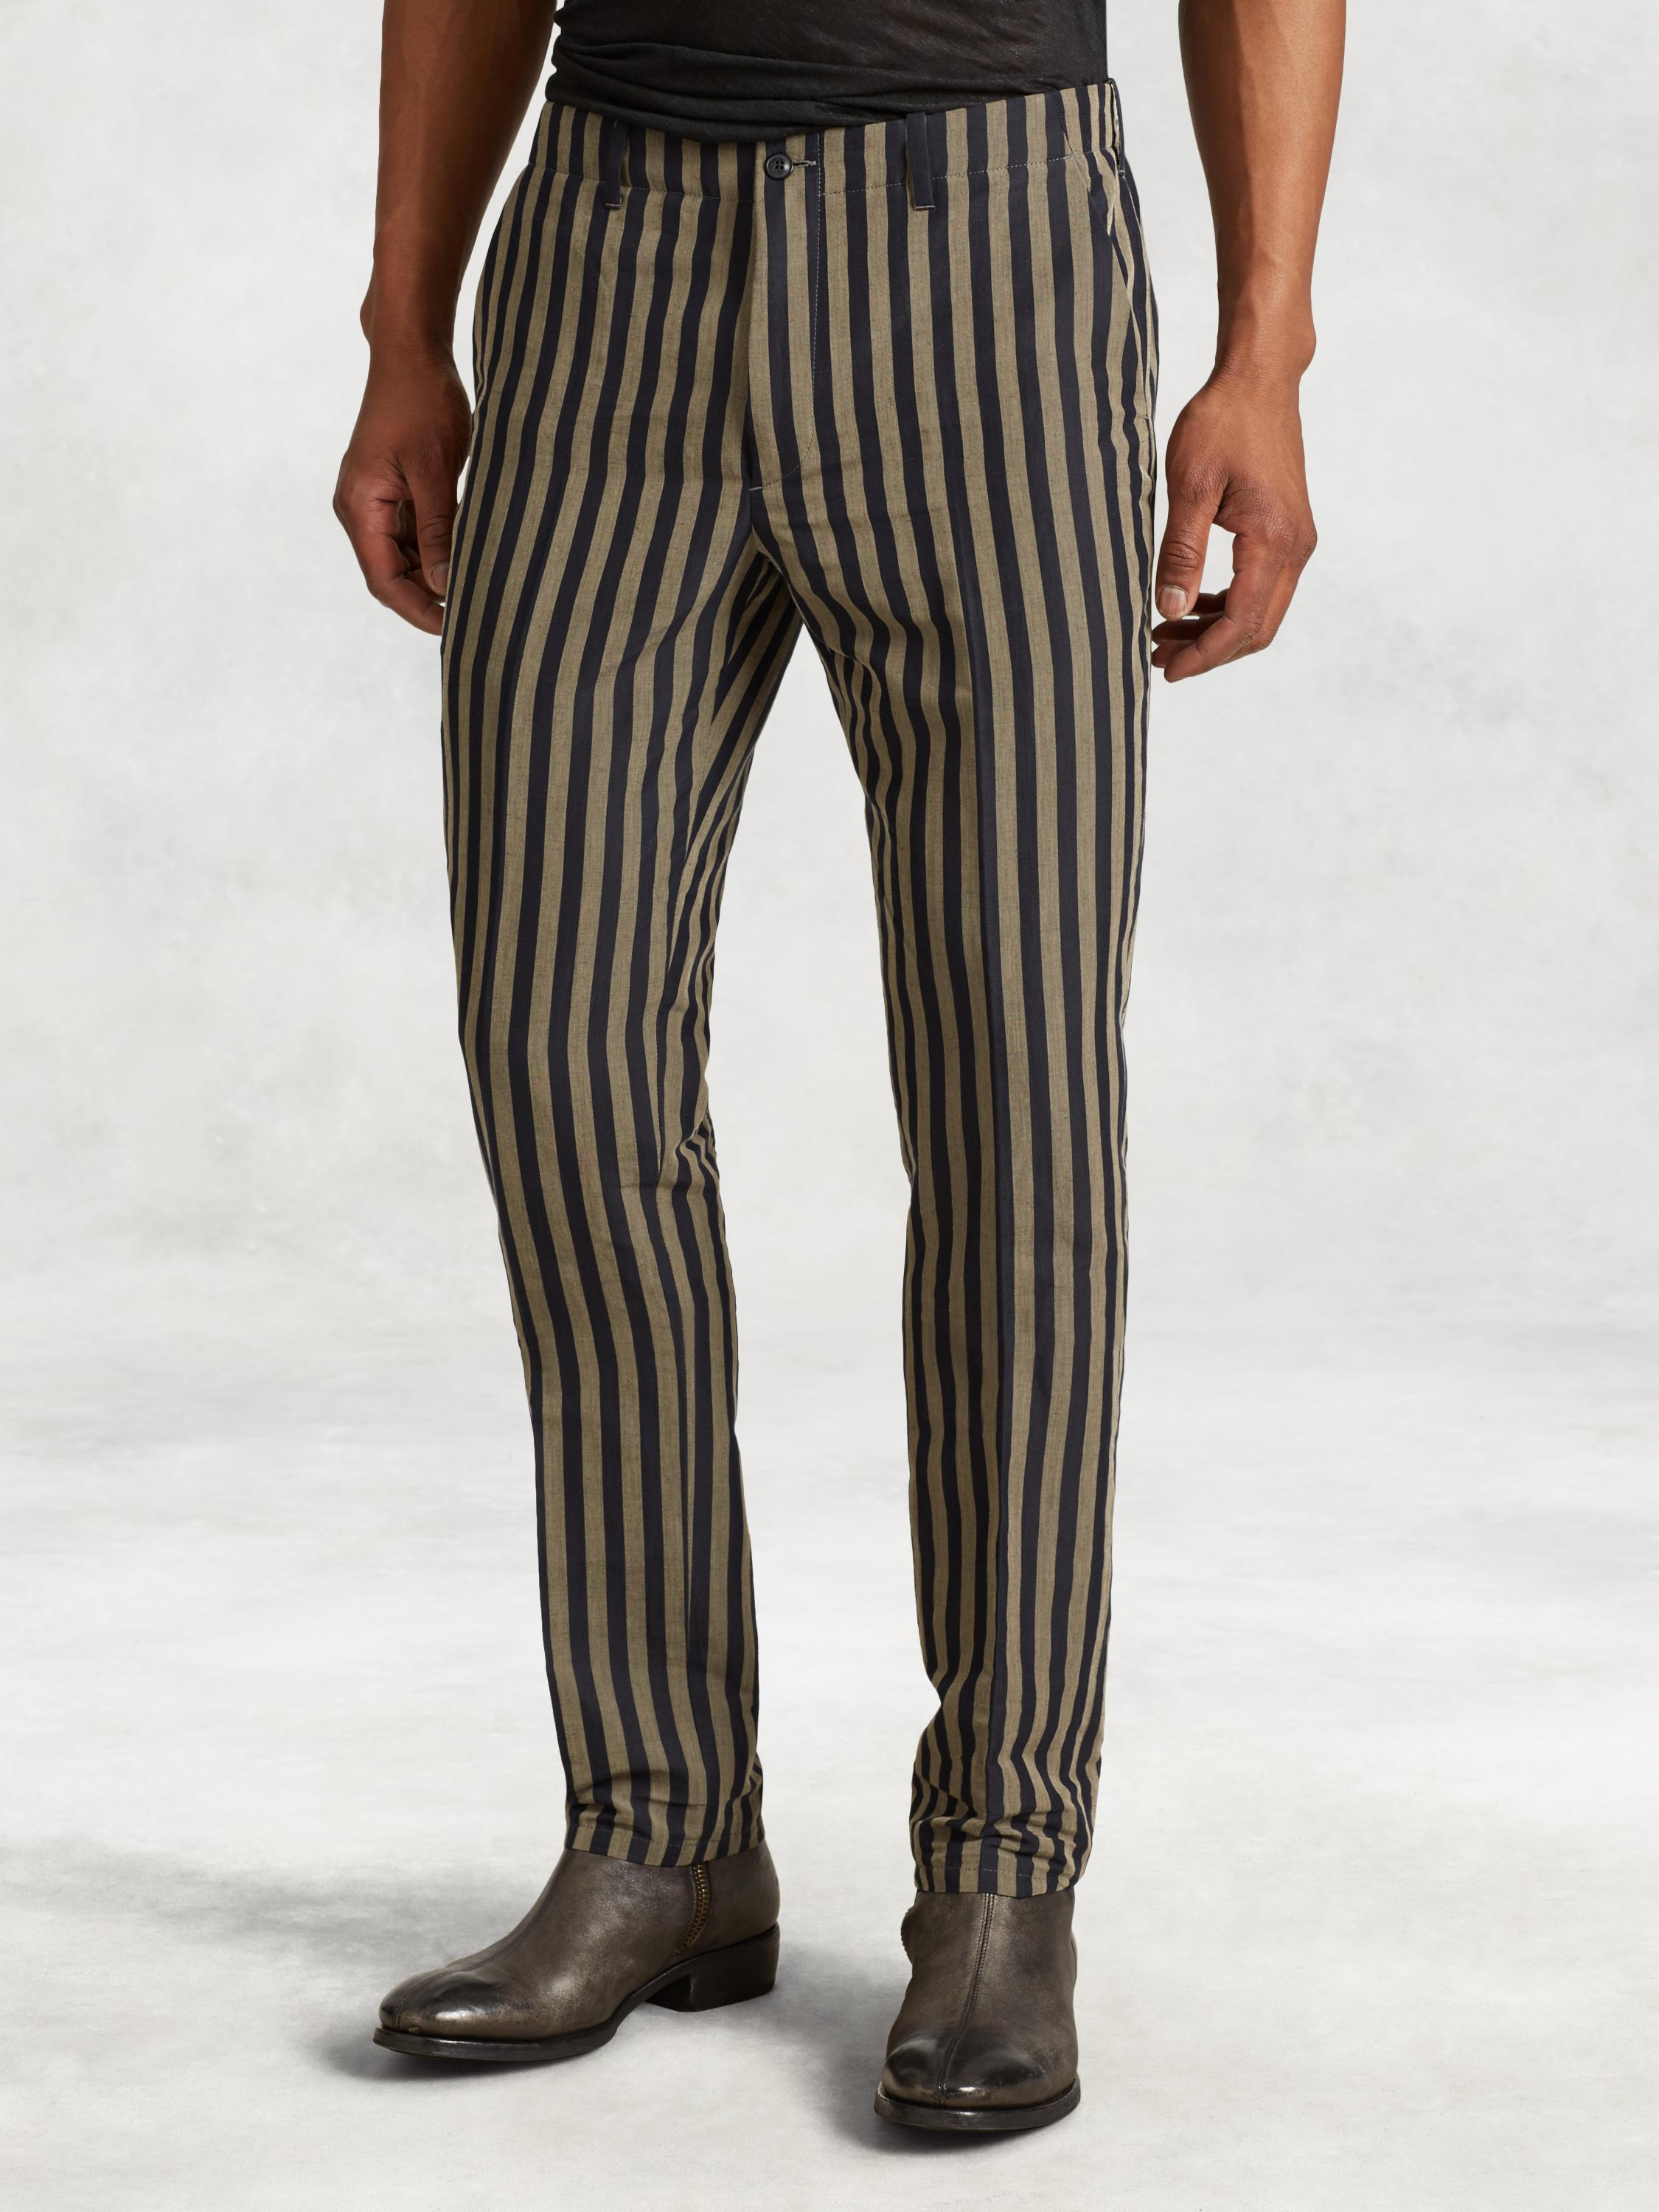 Cotton Blend Vintage Stripe Pant